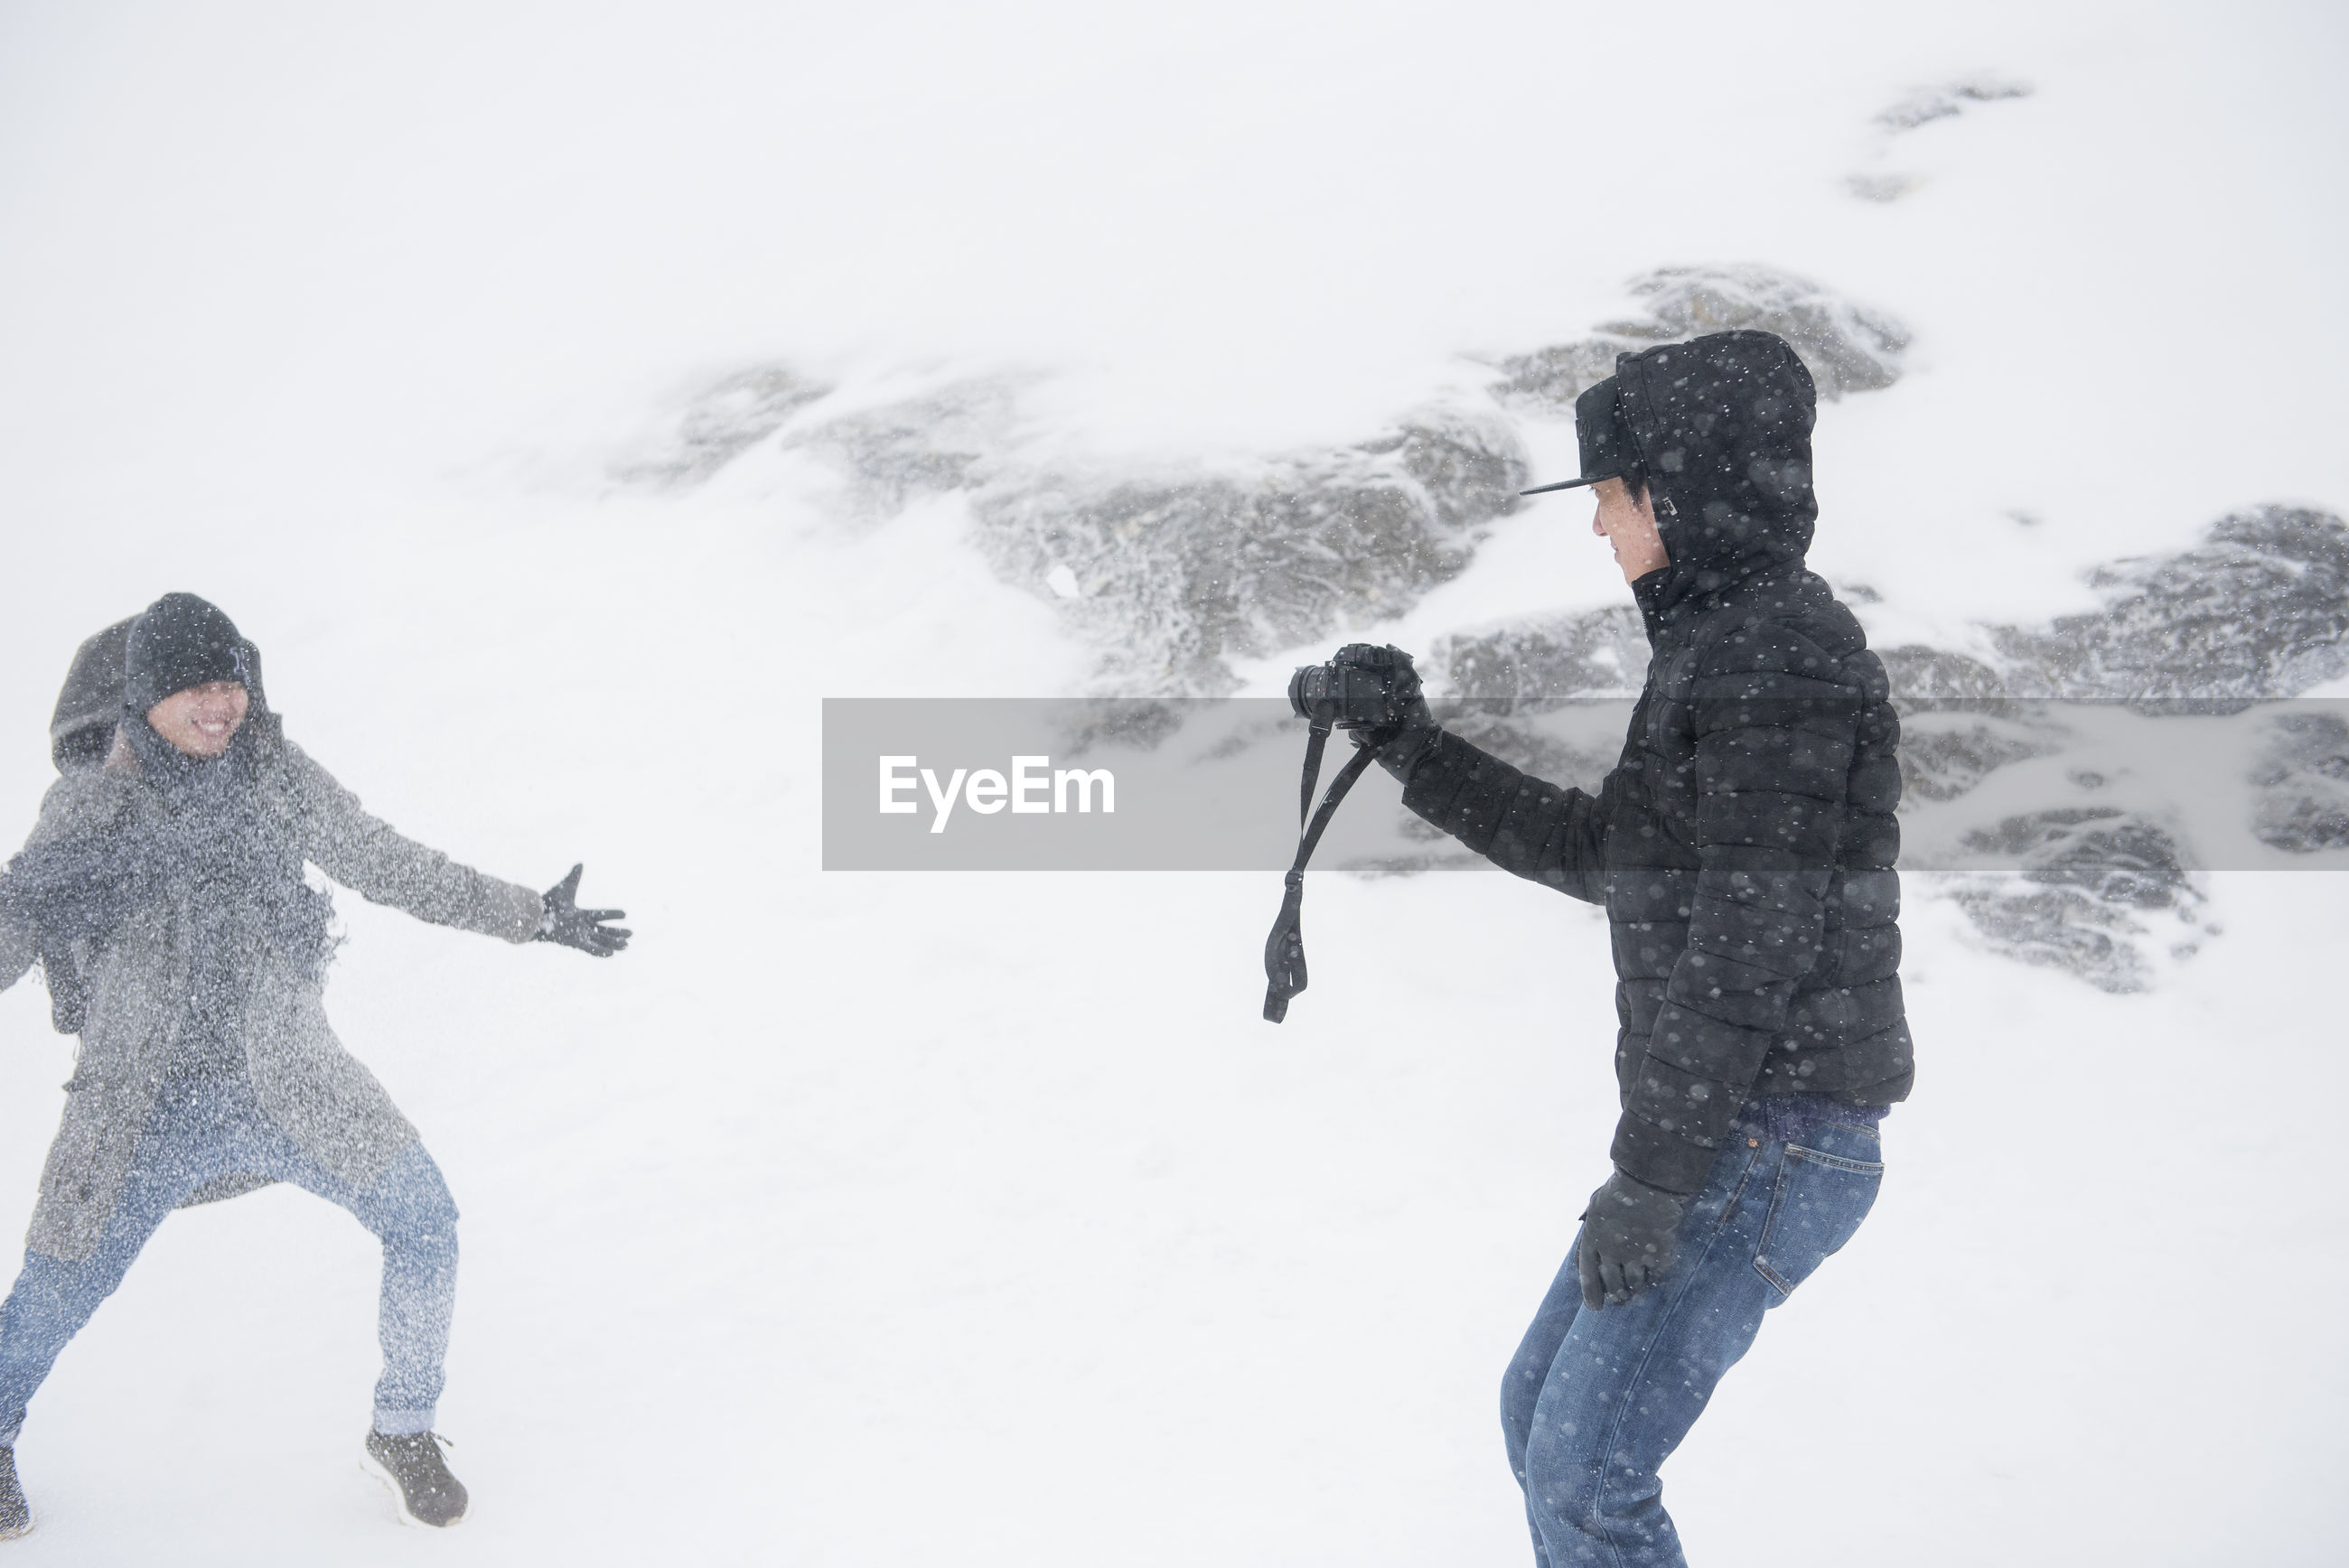 Man photographing friend on snow covered field